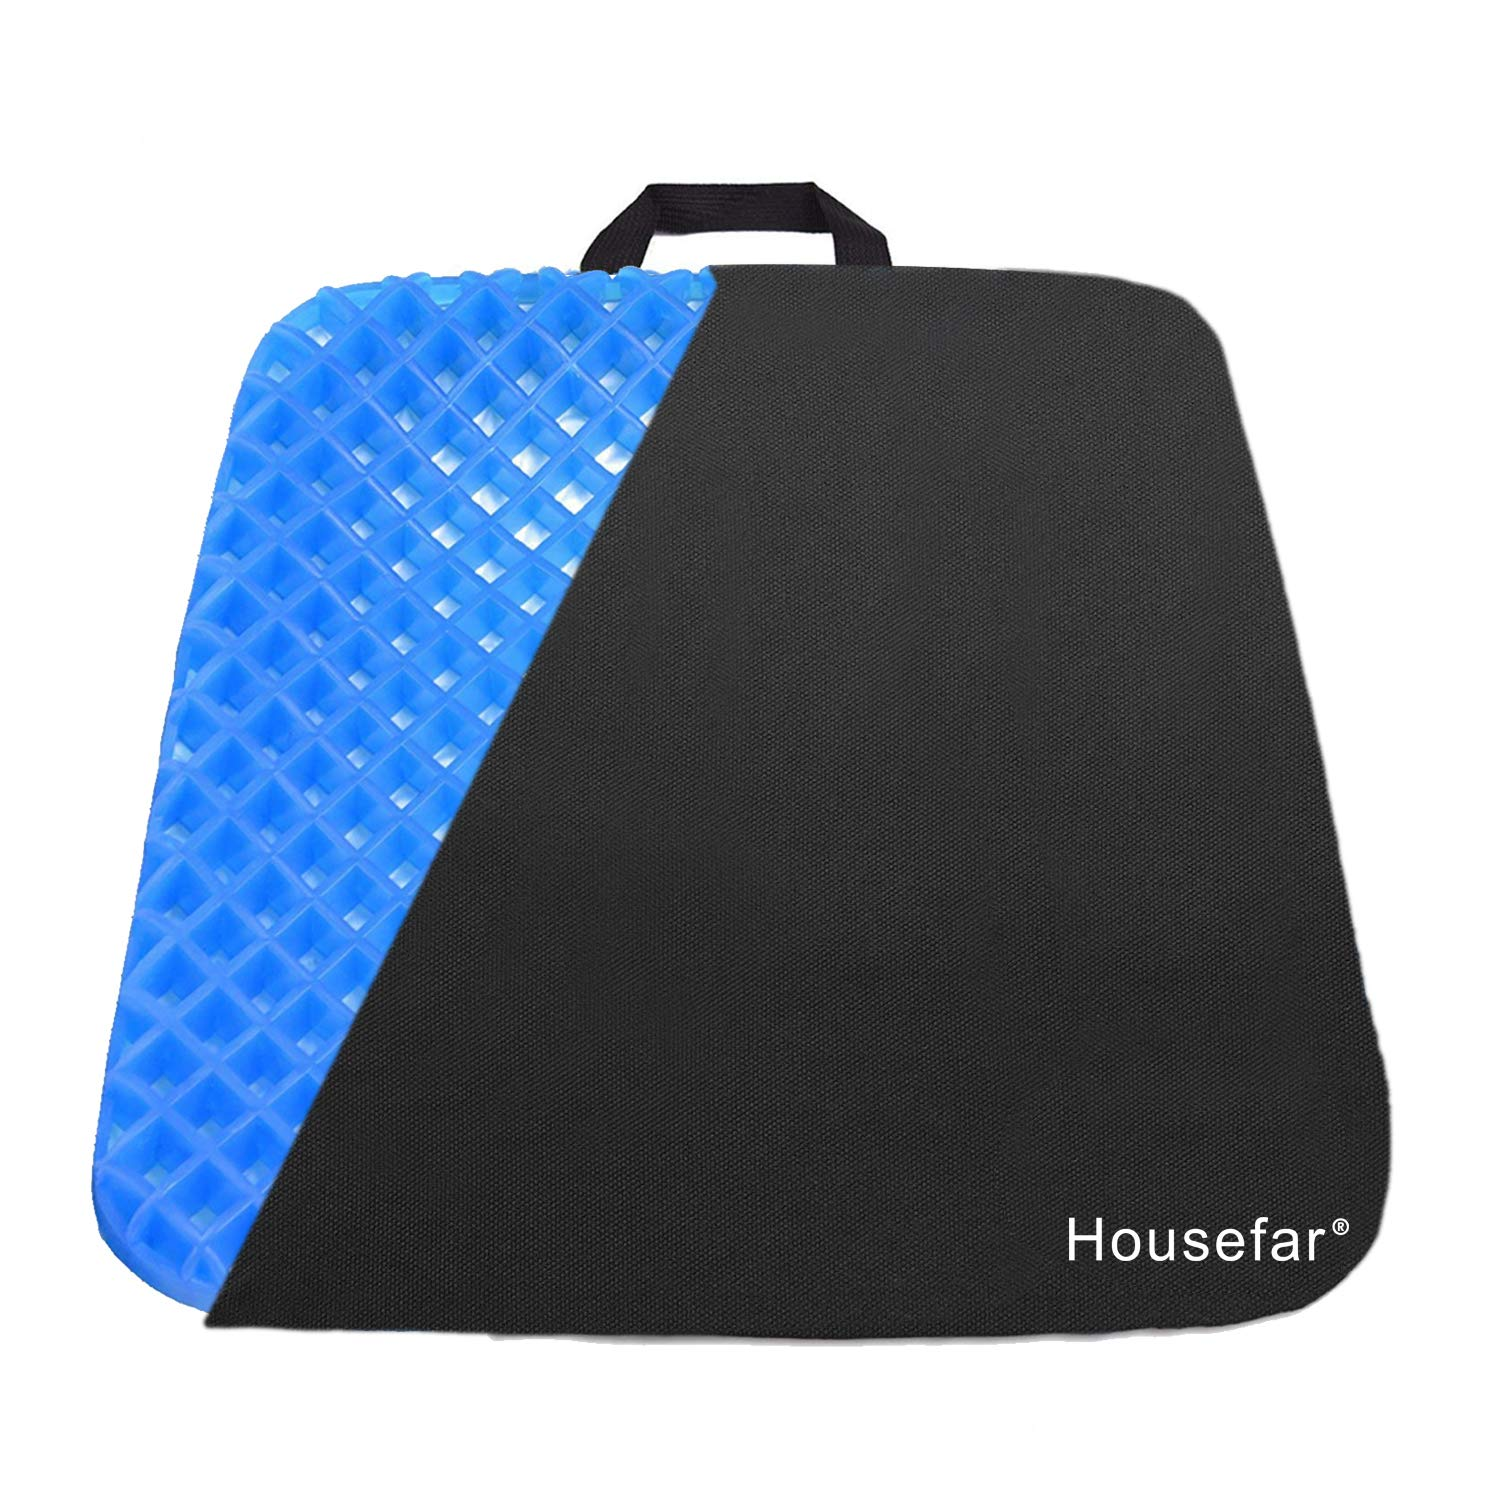 Gel Seat Cushion - Cool and Ventilated - Non-Slip , Seat Cushion - Relieves Sciatica and Coccyx Pain Housefar by Housefar